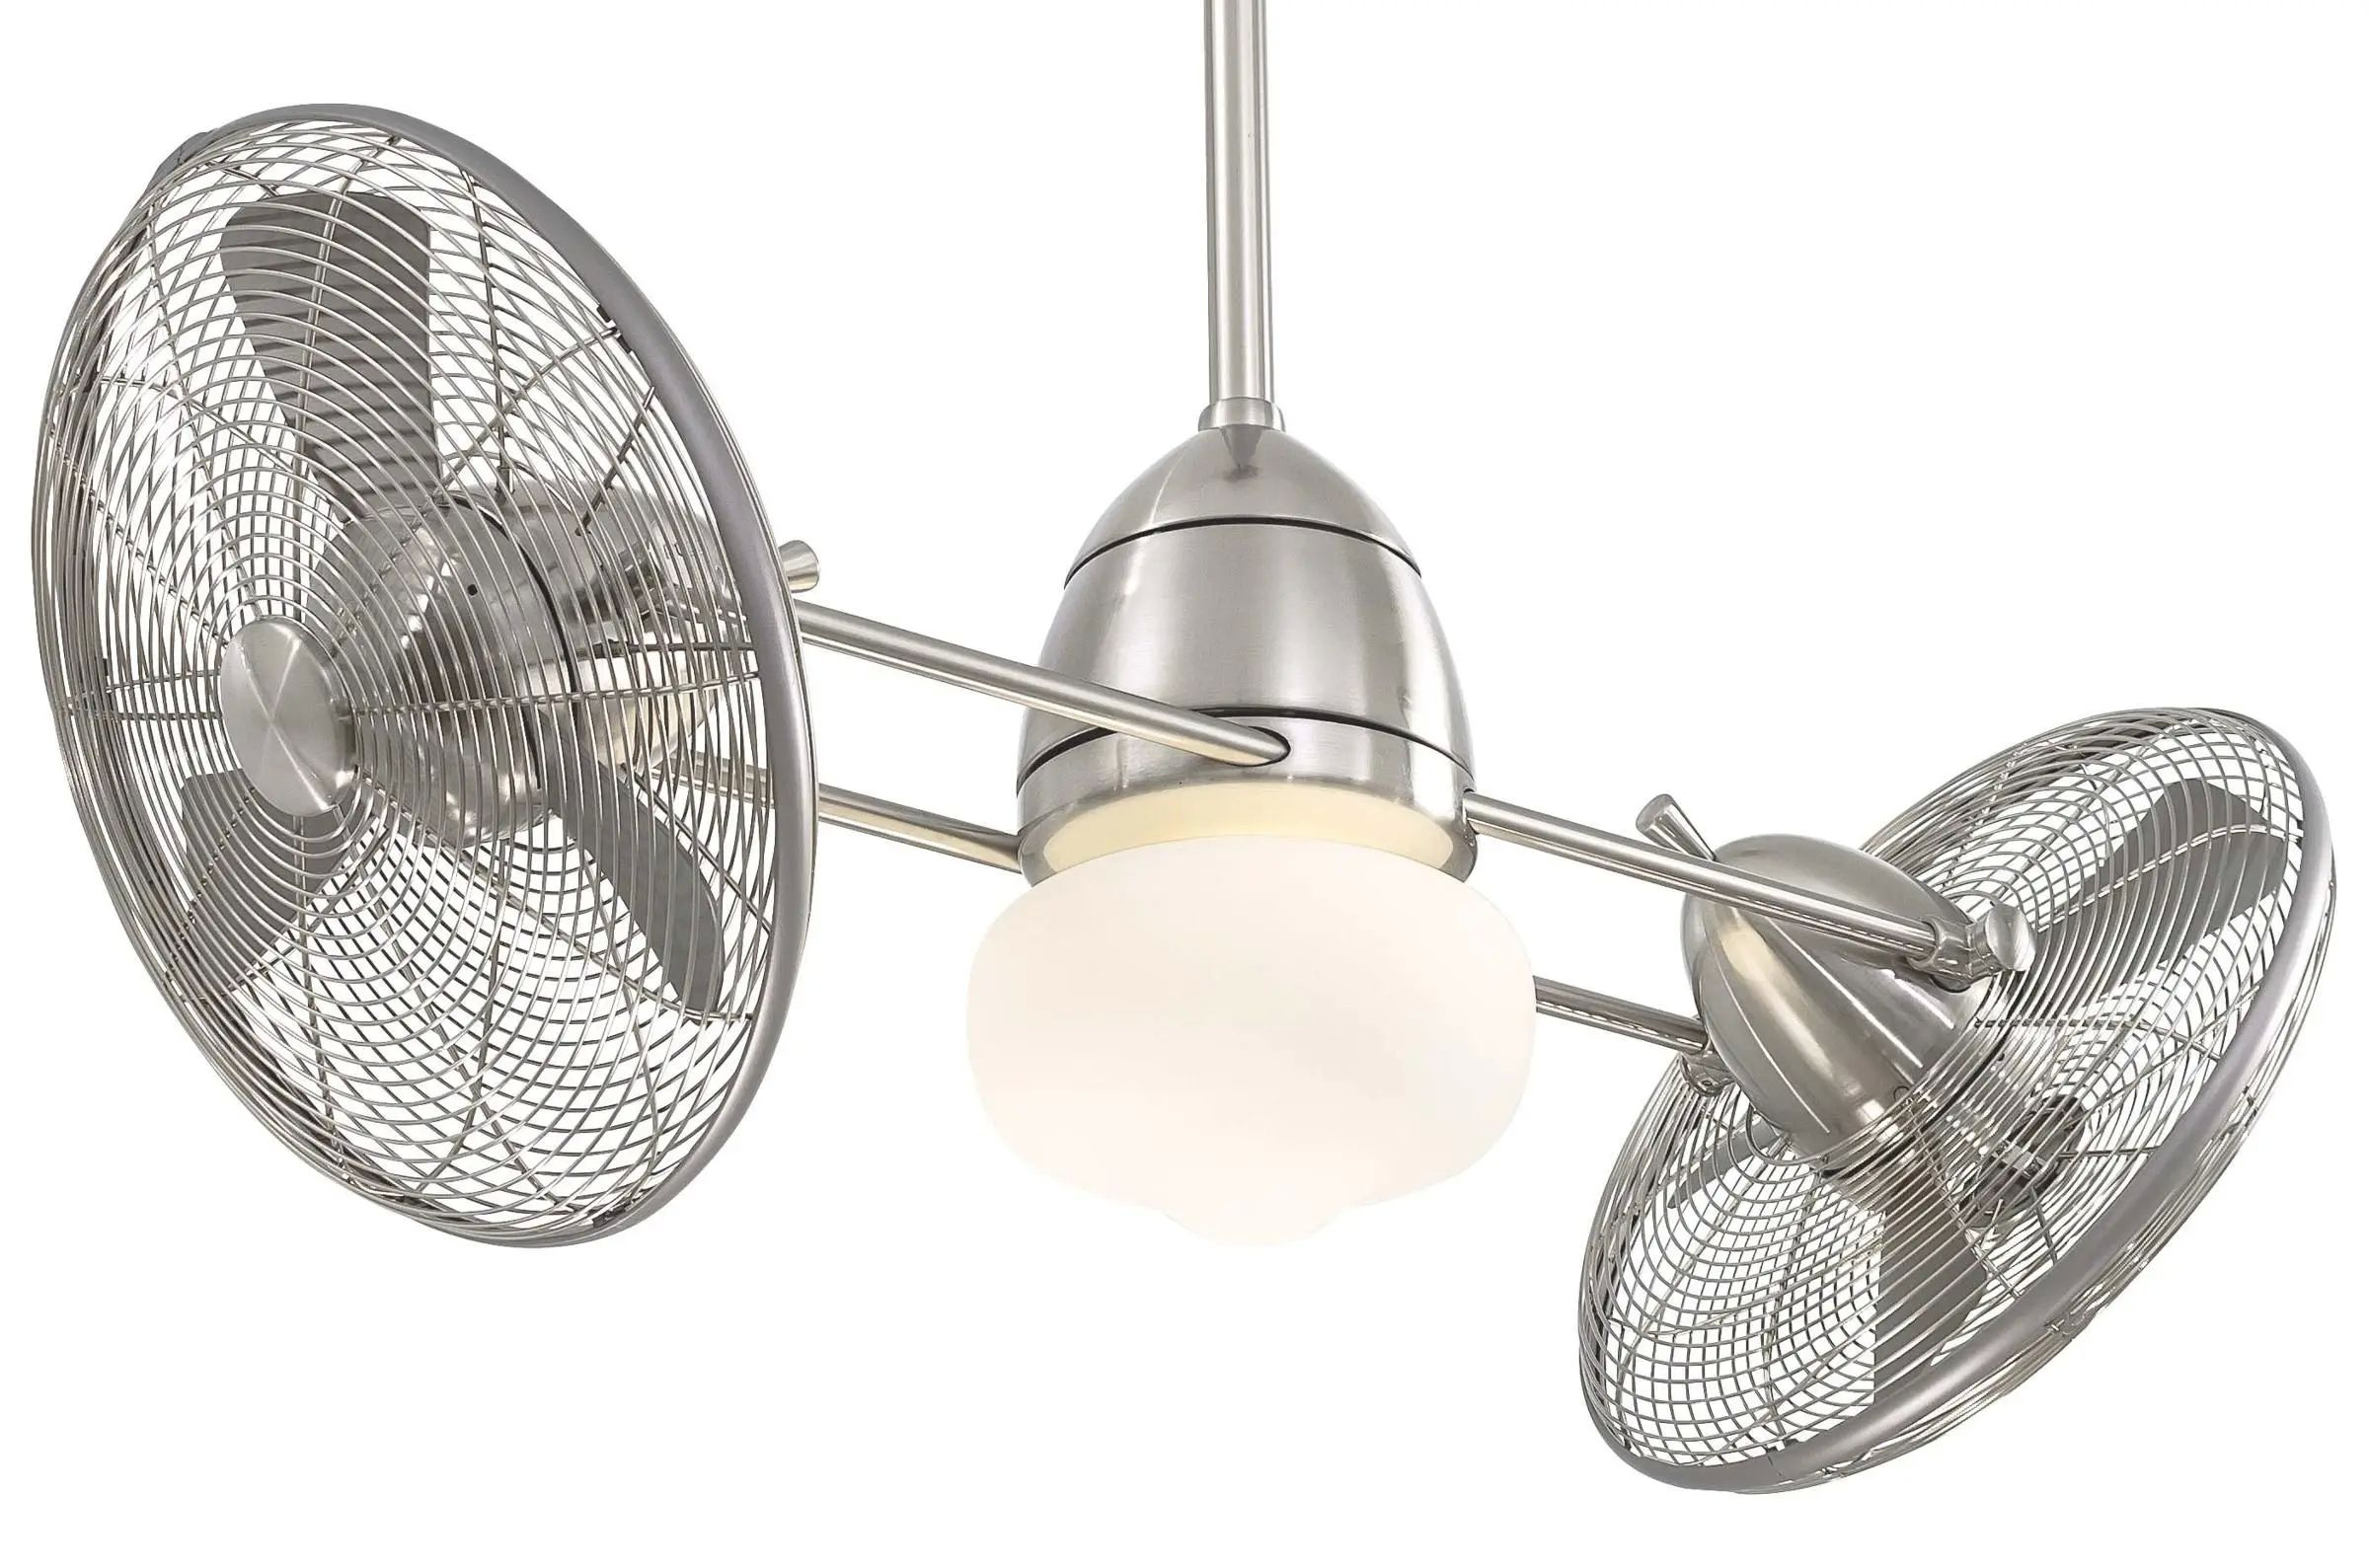 Minka Aire LED Gyro Outdoor Fan - Brushed Nickel Wet